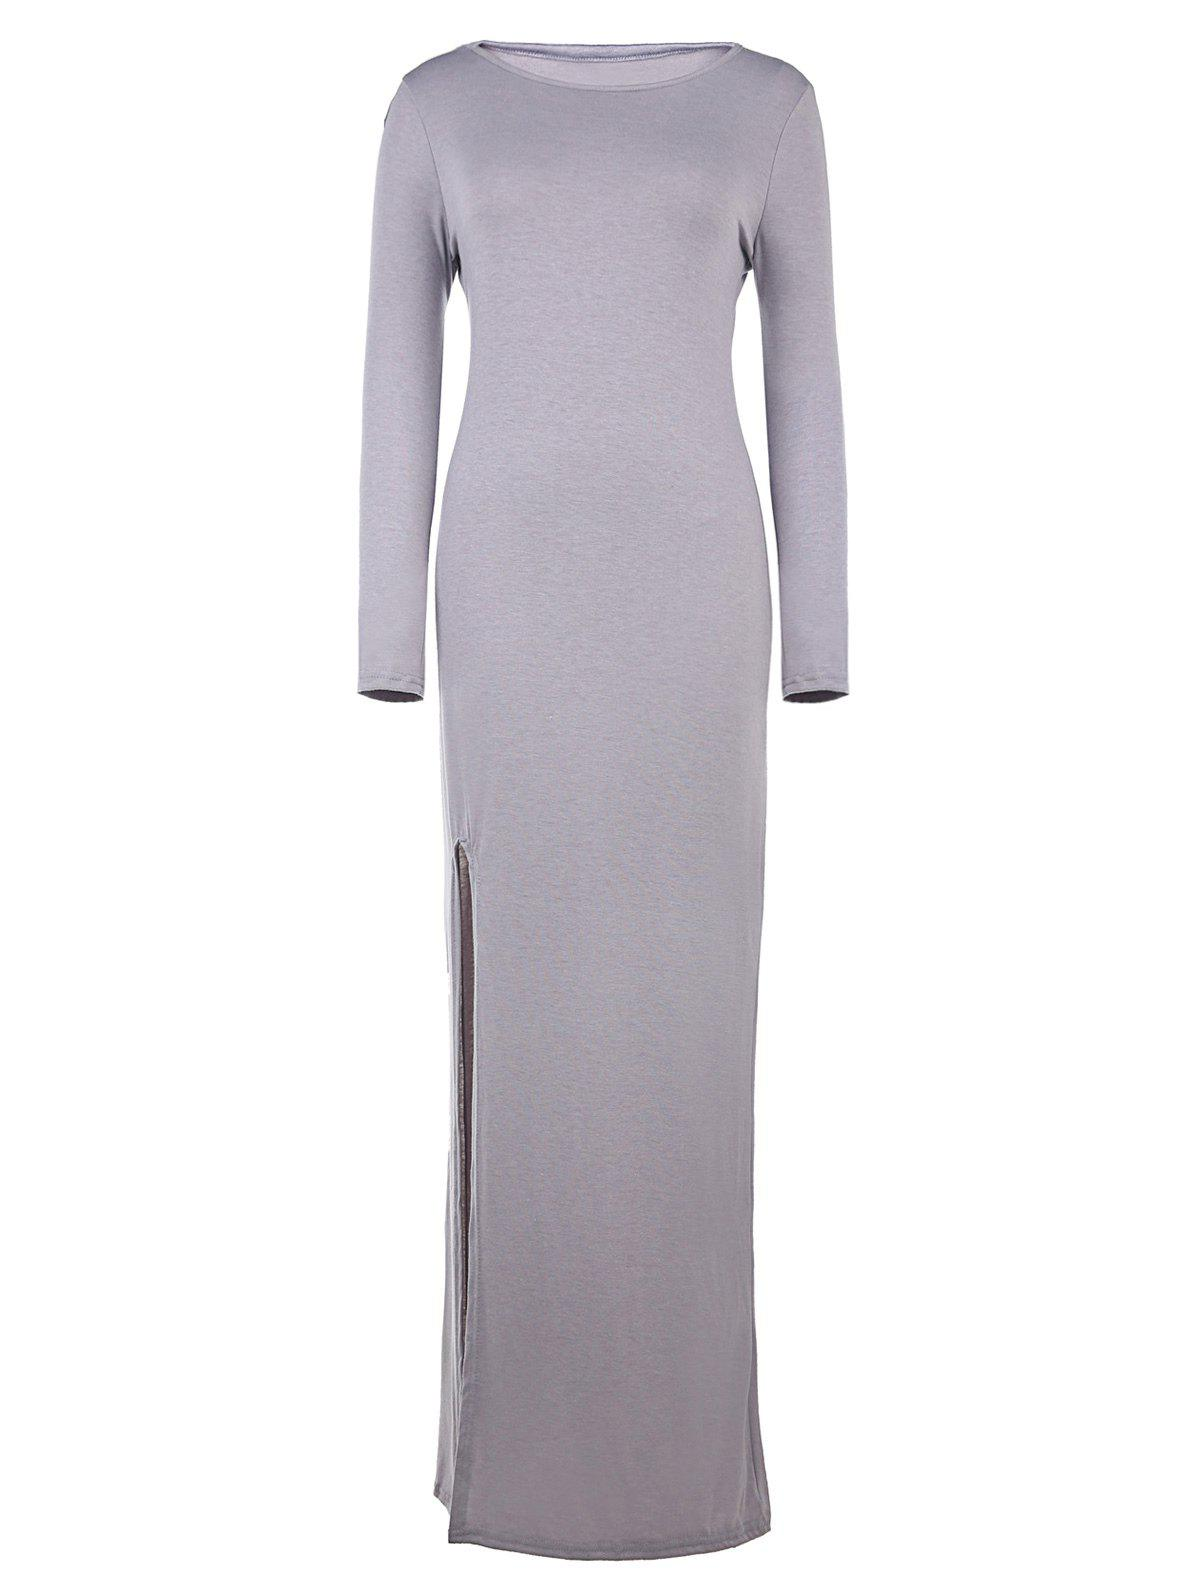 Long sleeve bodycon dress maxi and spencer north